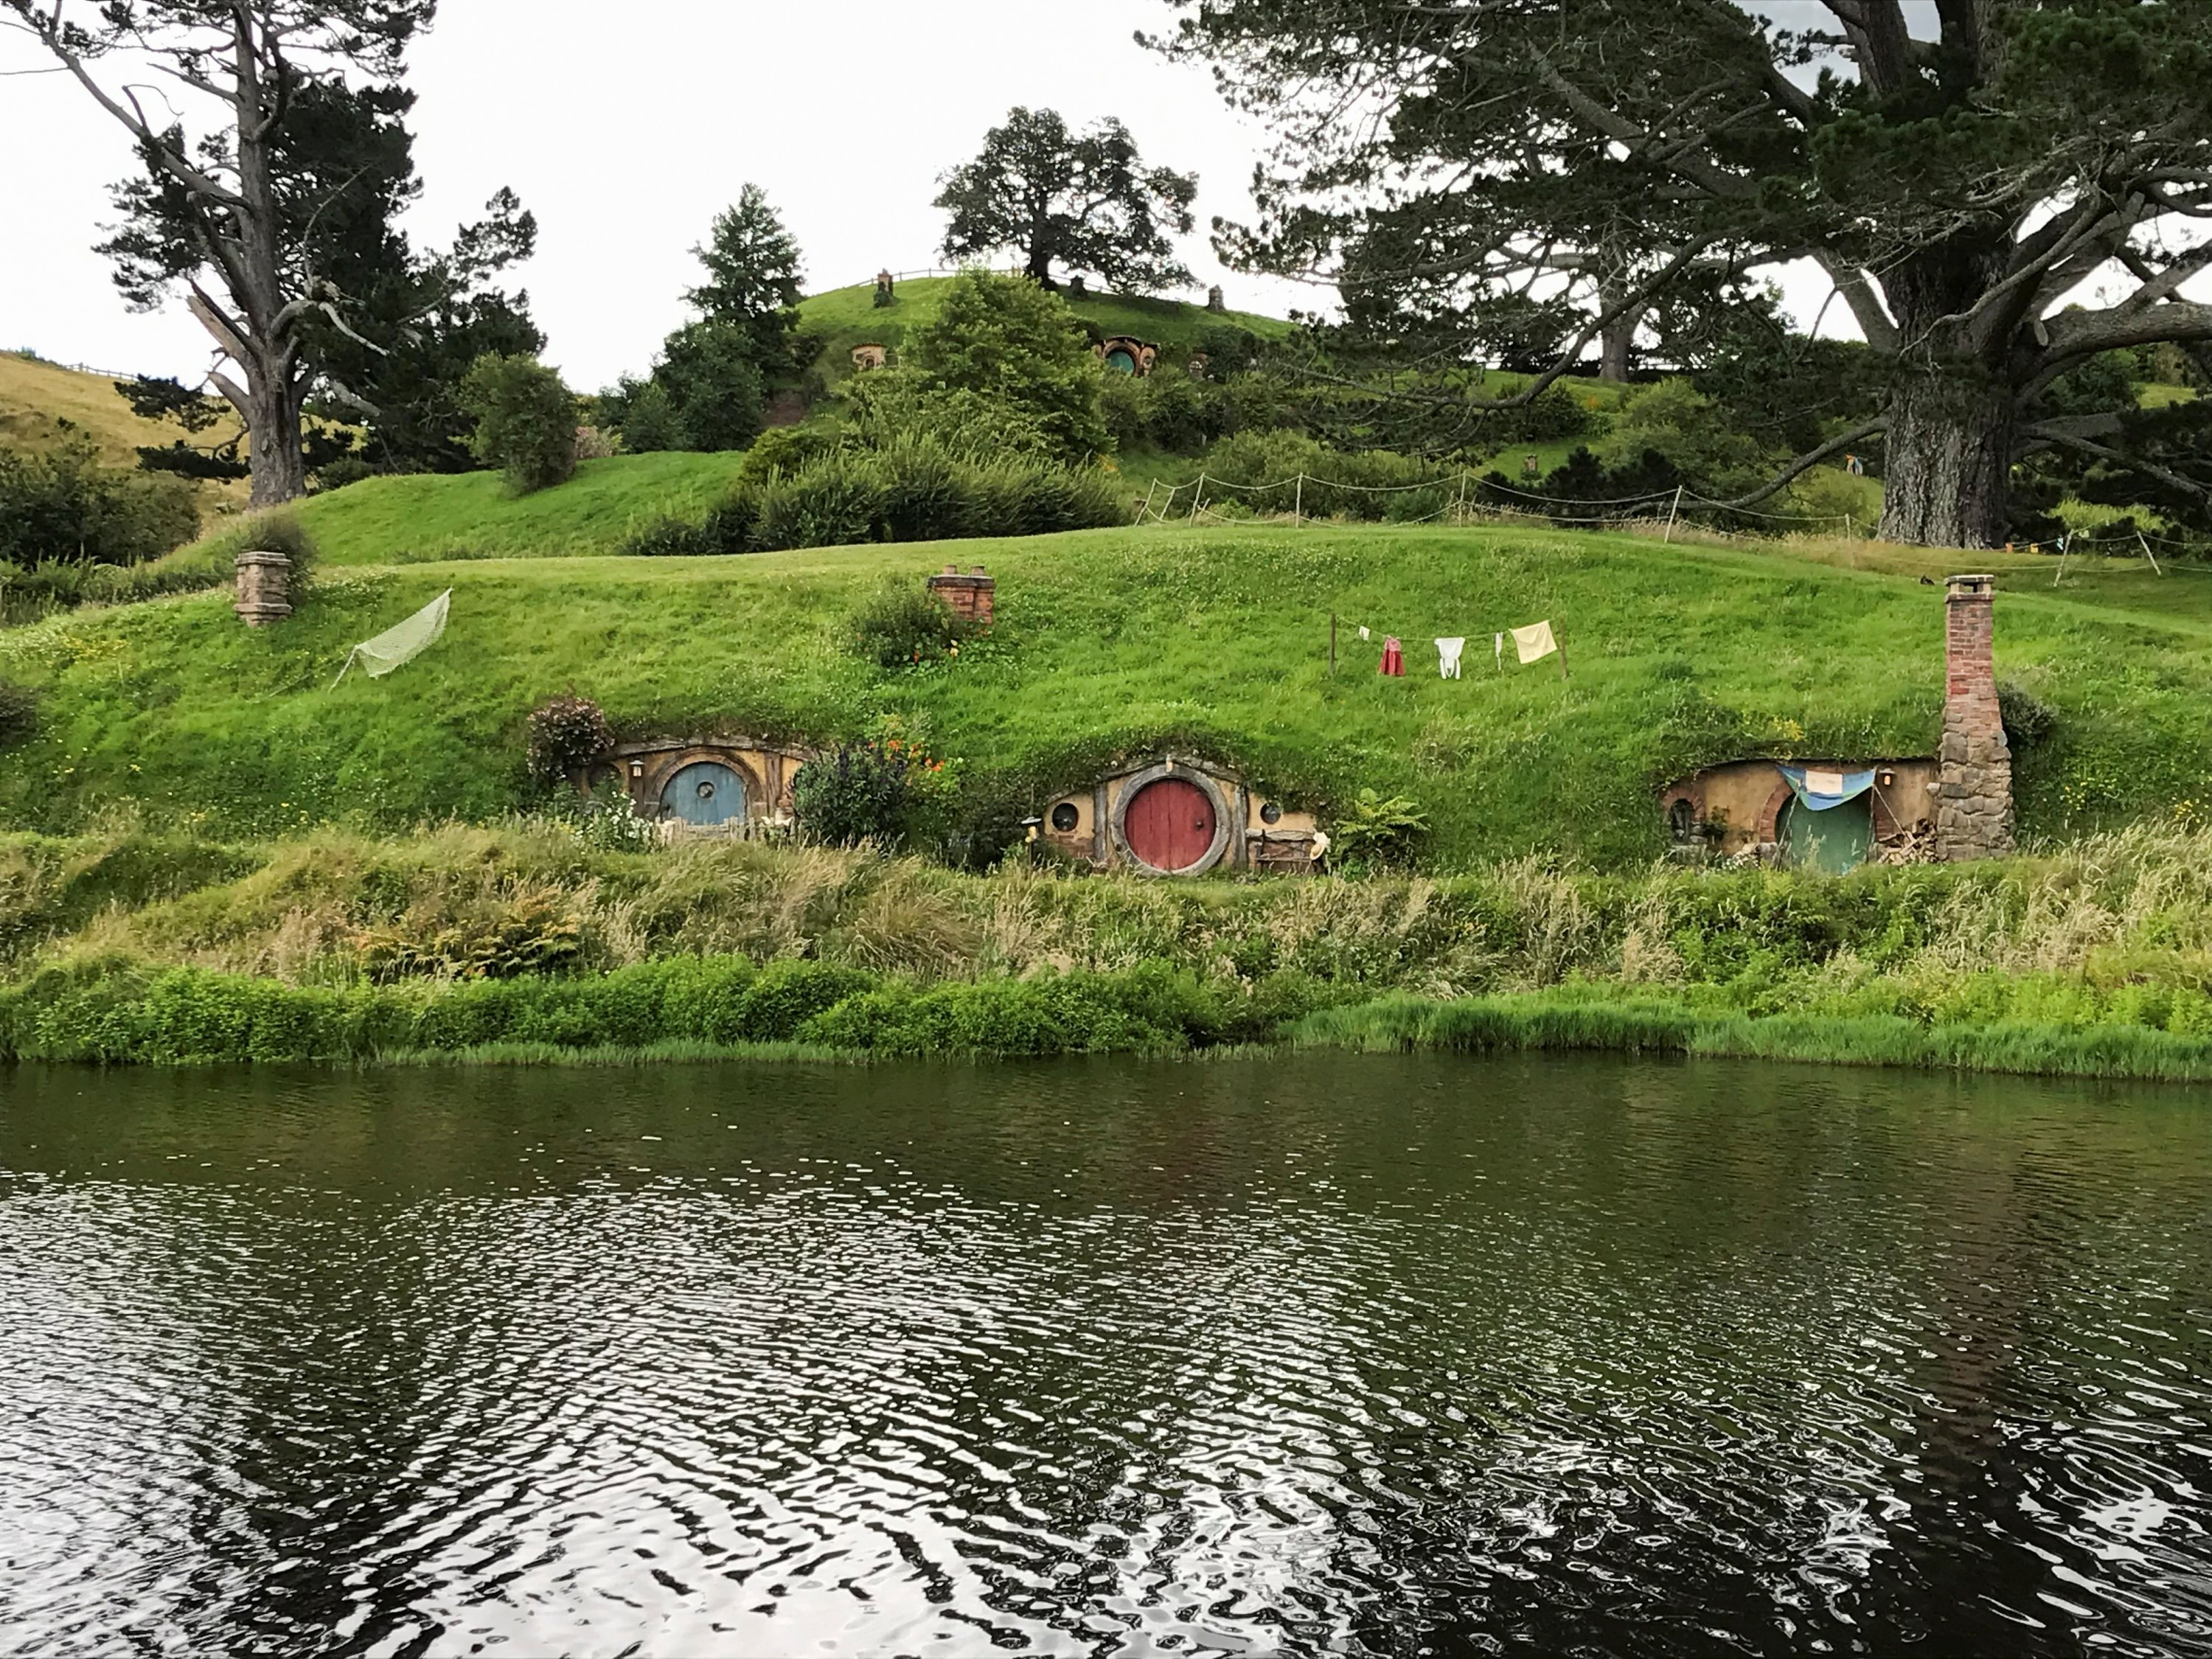 The Hobbiton Movie Set, a location for 'The Lord of the Rings' and 'The Hobbit' film trilogy, is pictured in Matamata, New Zealand, on Dec. 27, 2020. (REUTERS Photo)